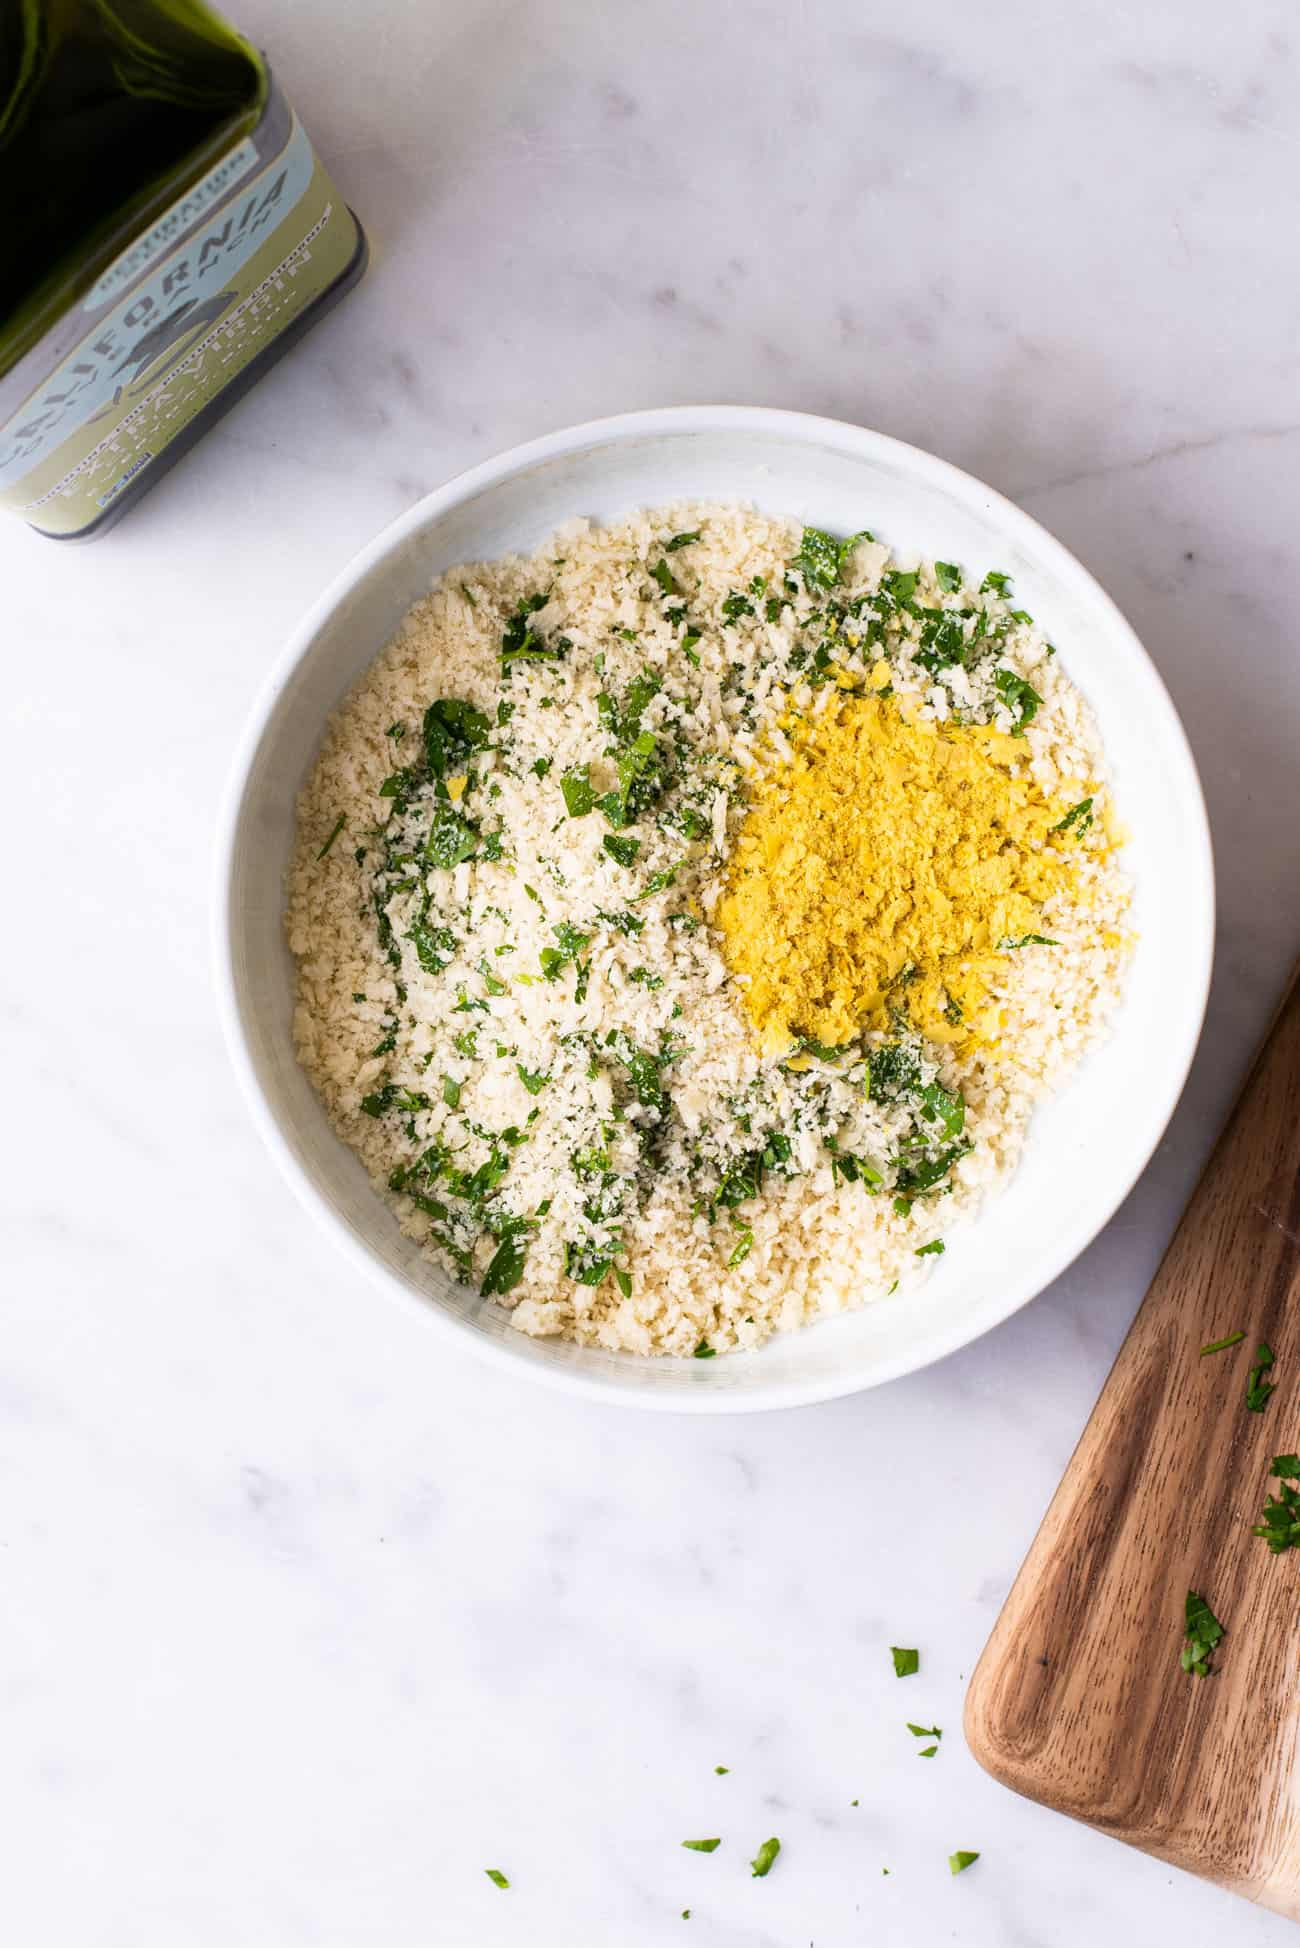 Panko breadcrumbs with nutritional yeast and chopped parsley in a white bowl next to a bottle of olive oil